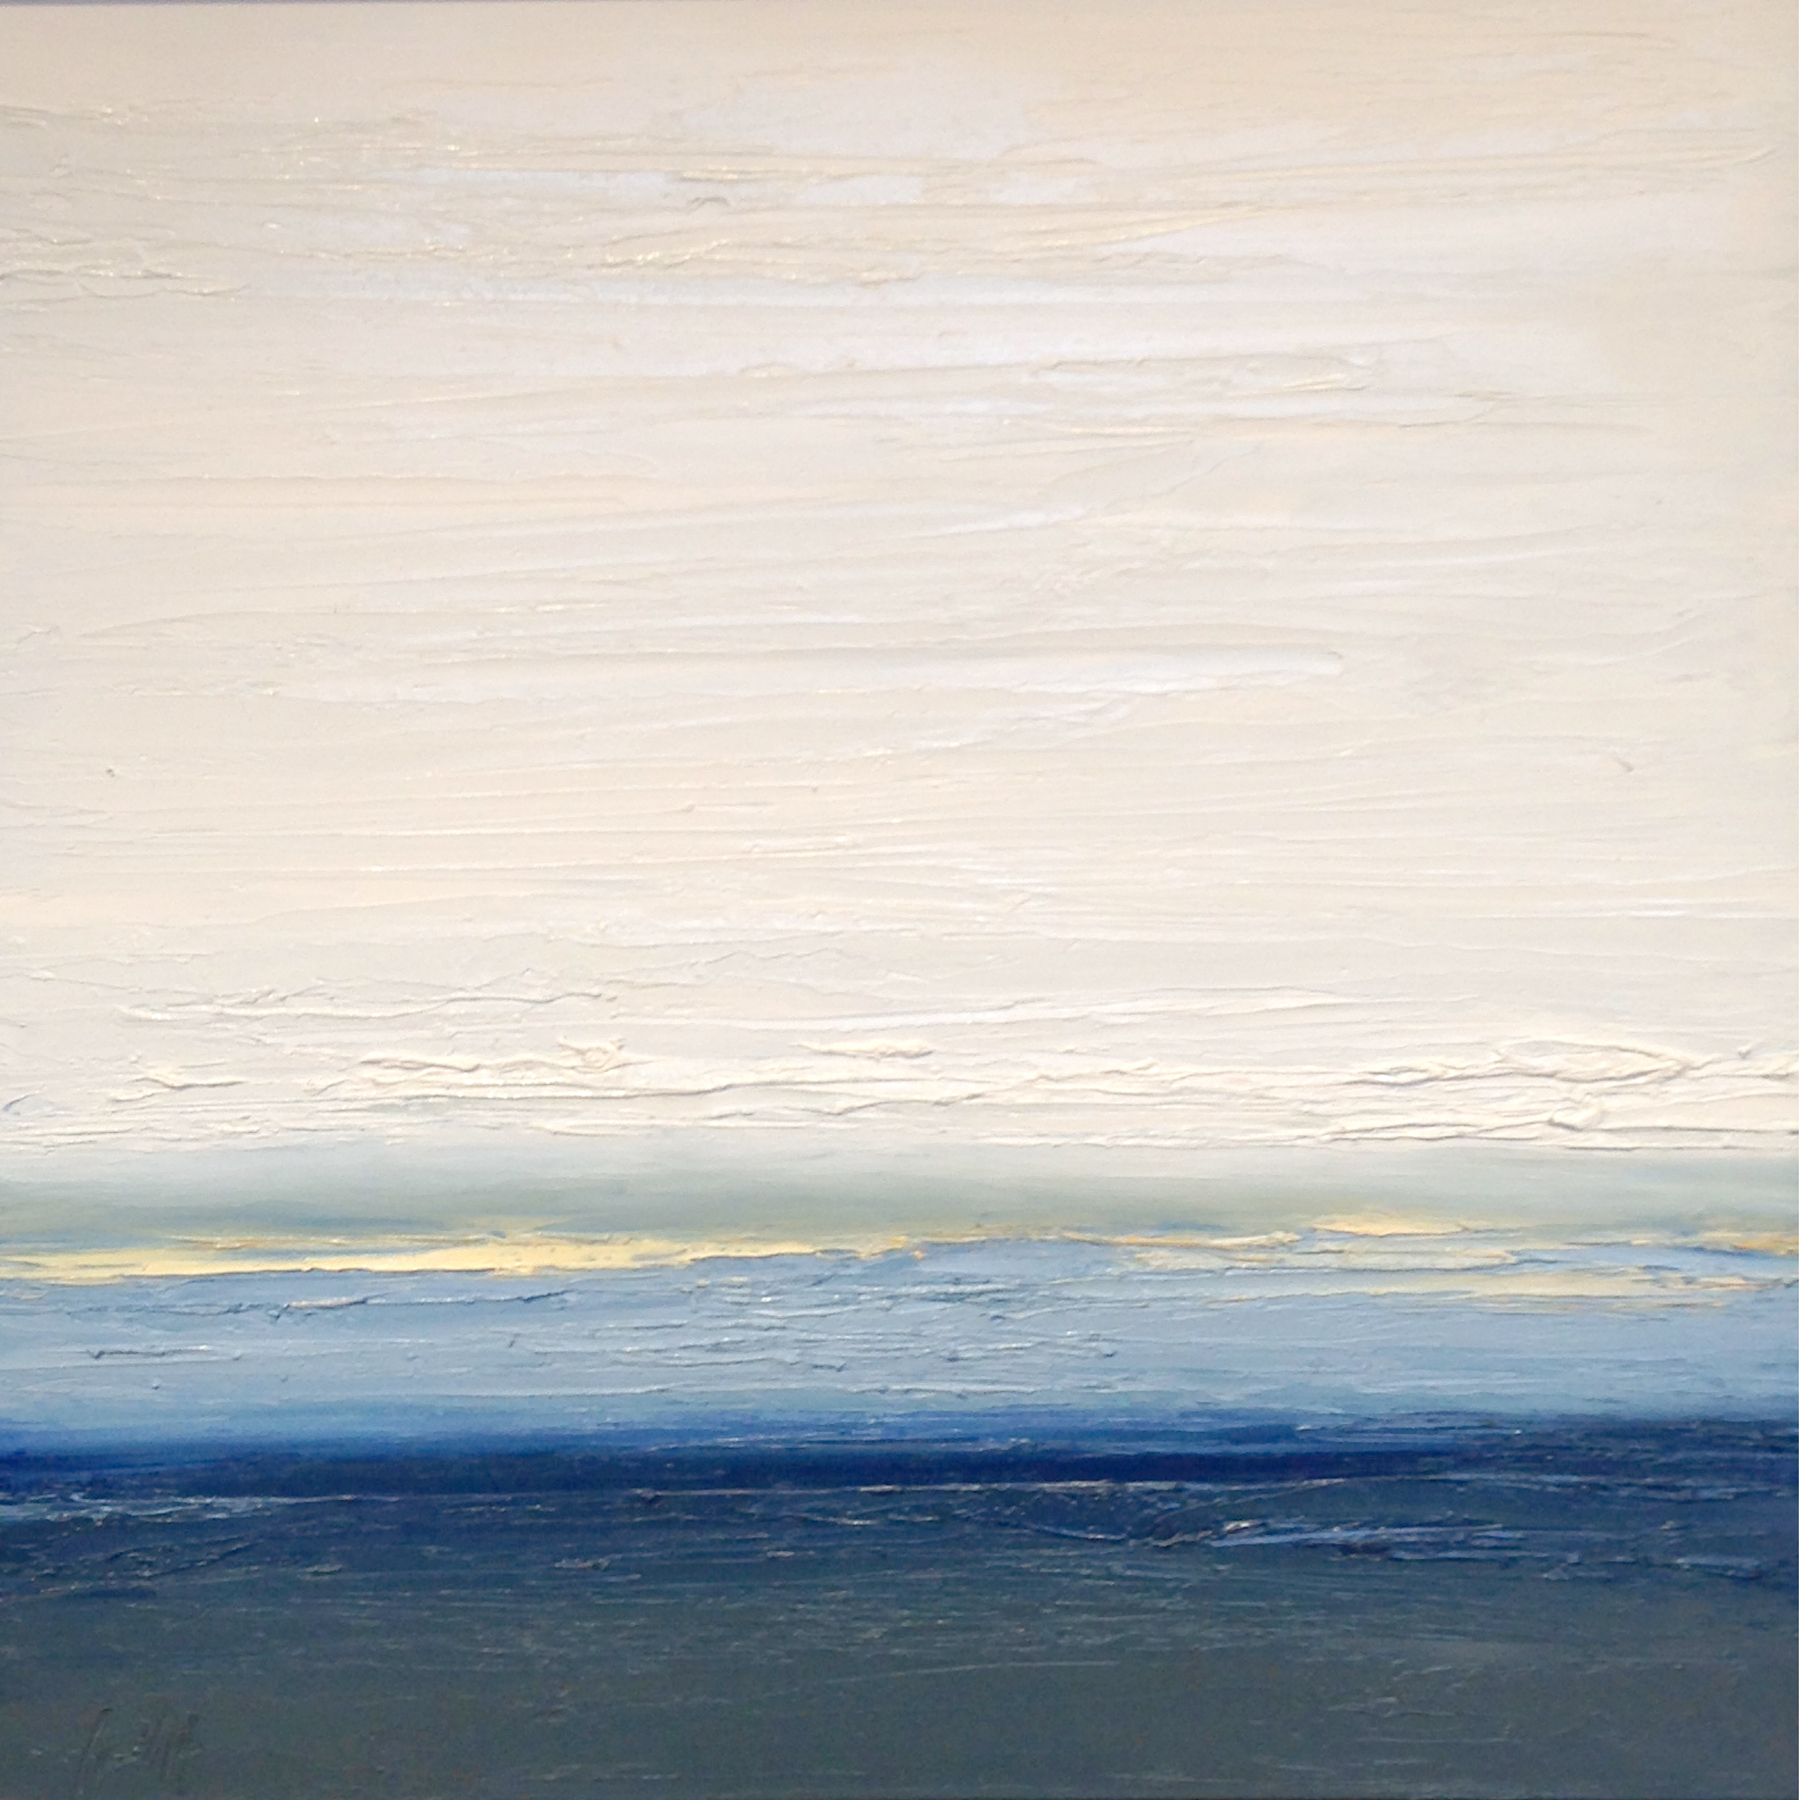 At The Horizon 3-21-2014, oil on board, 16 by 16 inches, 2014, $1500 (sold)